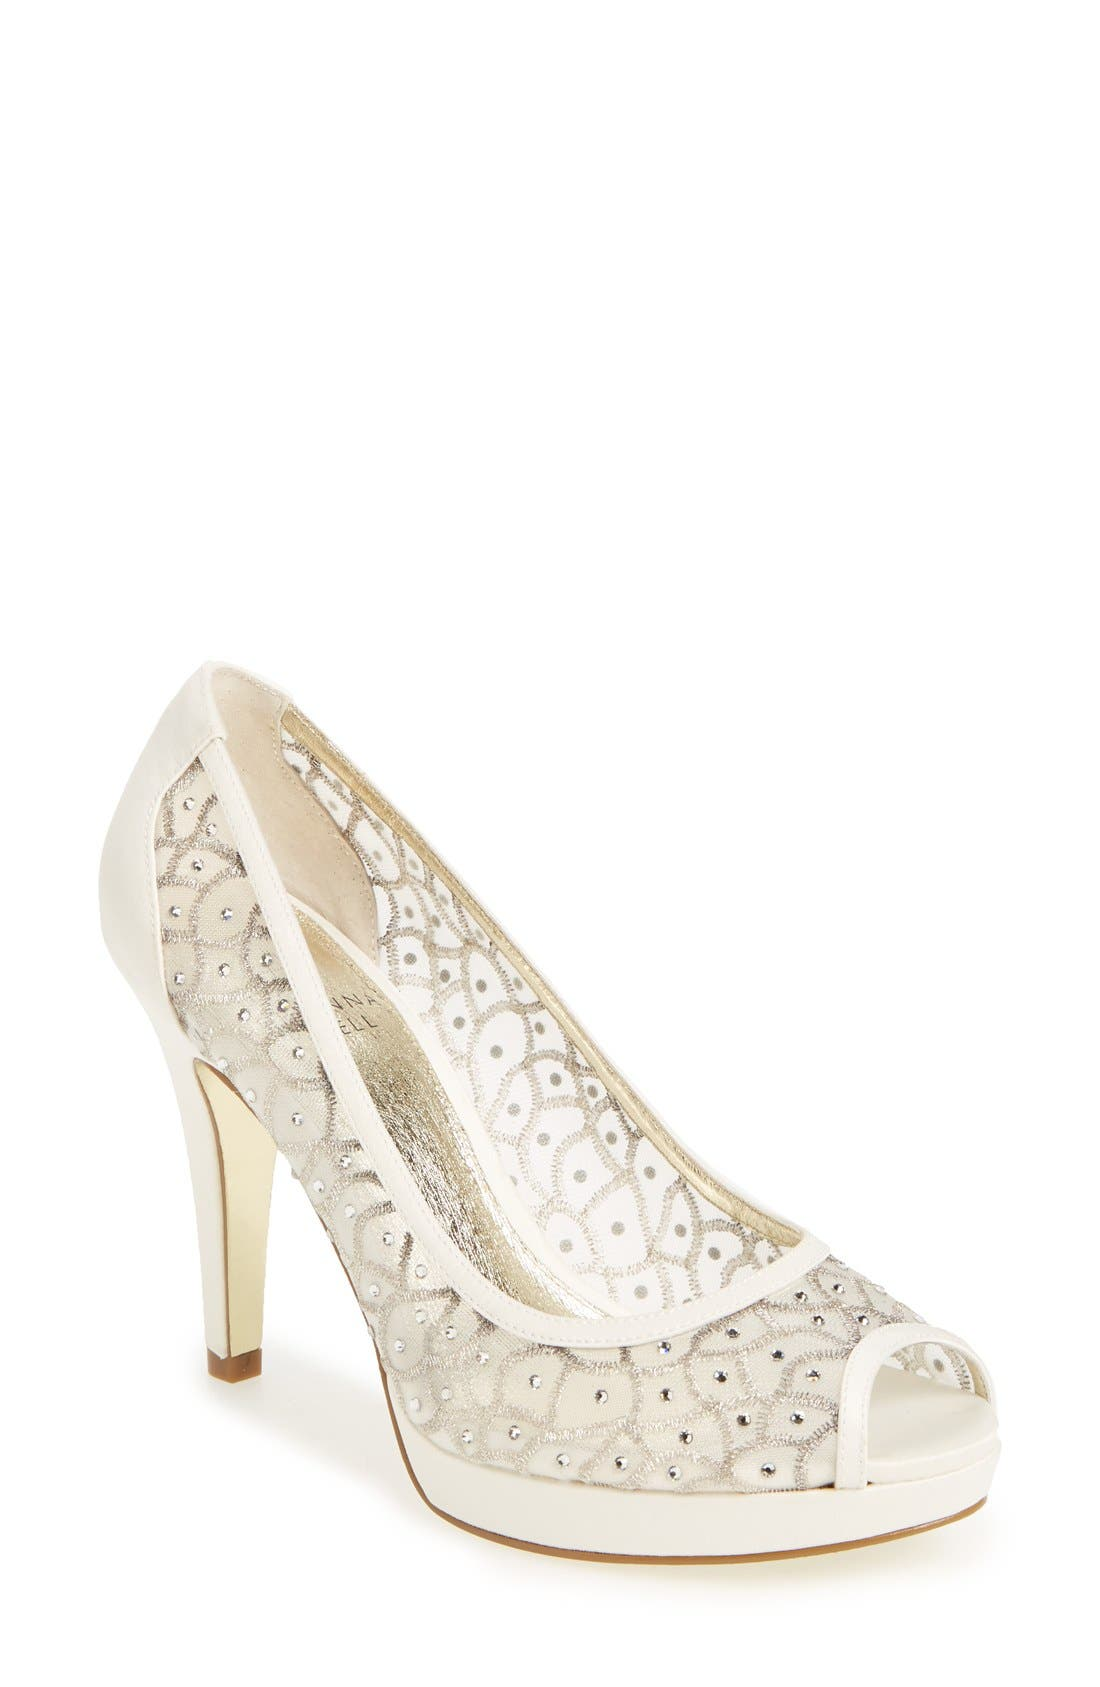 Adrianna Papell 'Foxy' Crystal Embellished Peeptoe Pump (Women)